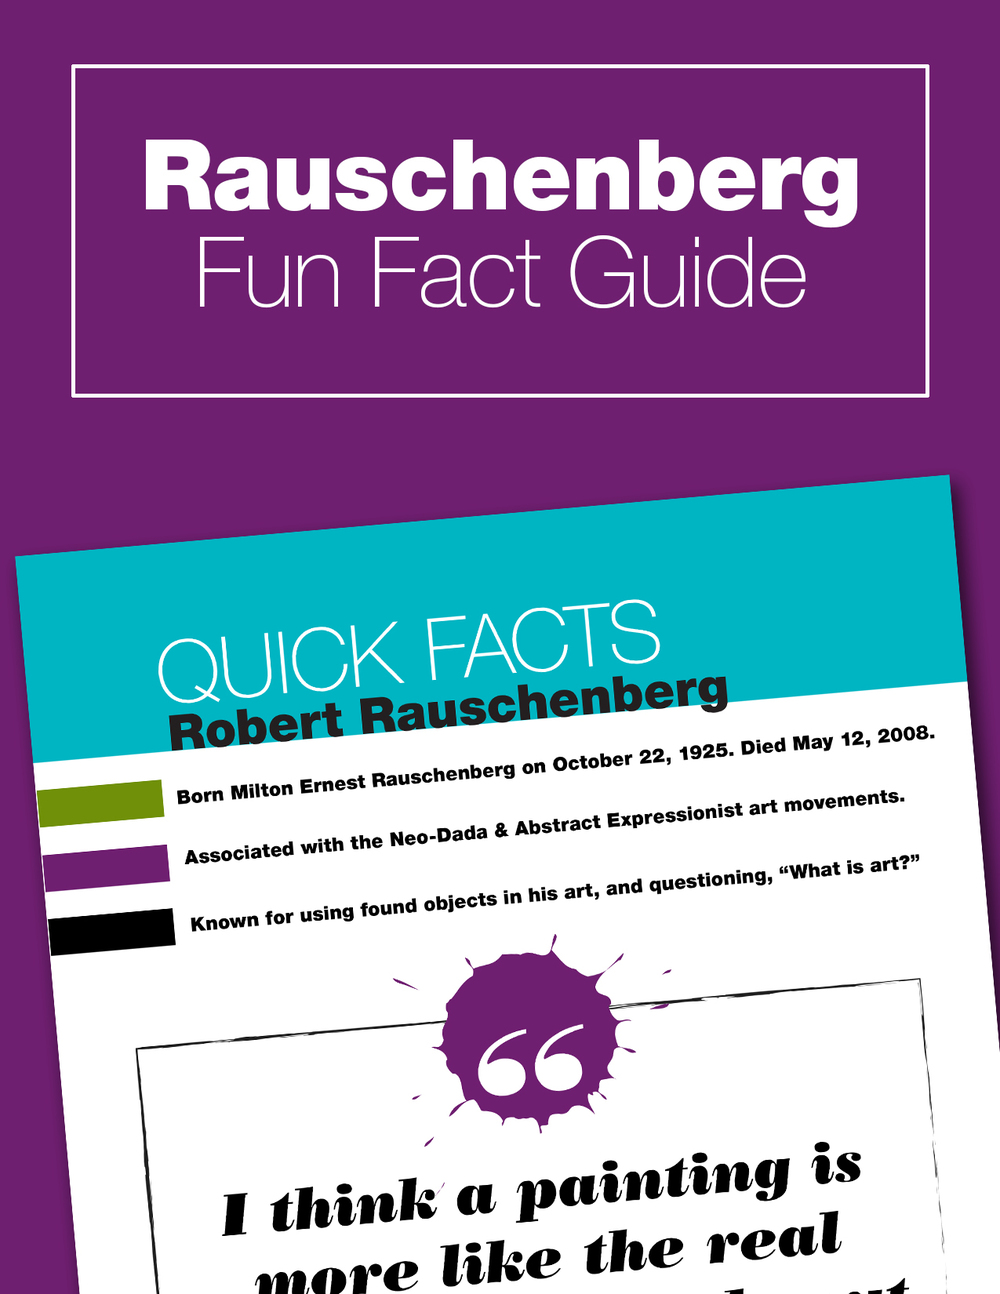 Art History Lesson about Robert Rauschenberg and his use of found objects in his art. A fun activity and lesson plan for kids doing a Rauschenberg unit study. Includes free printable.